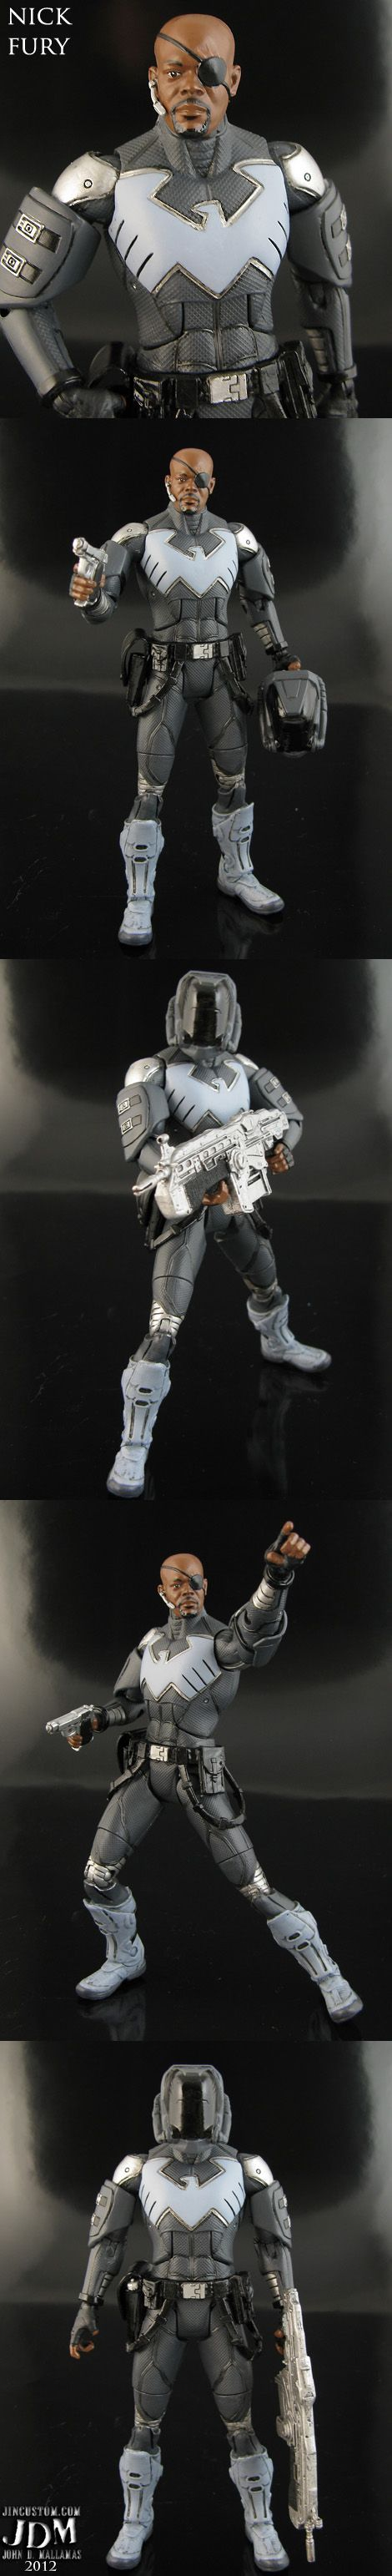 17 Best Images About Toys On Pinterest Toys Army Of Two And Nerf